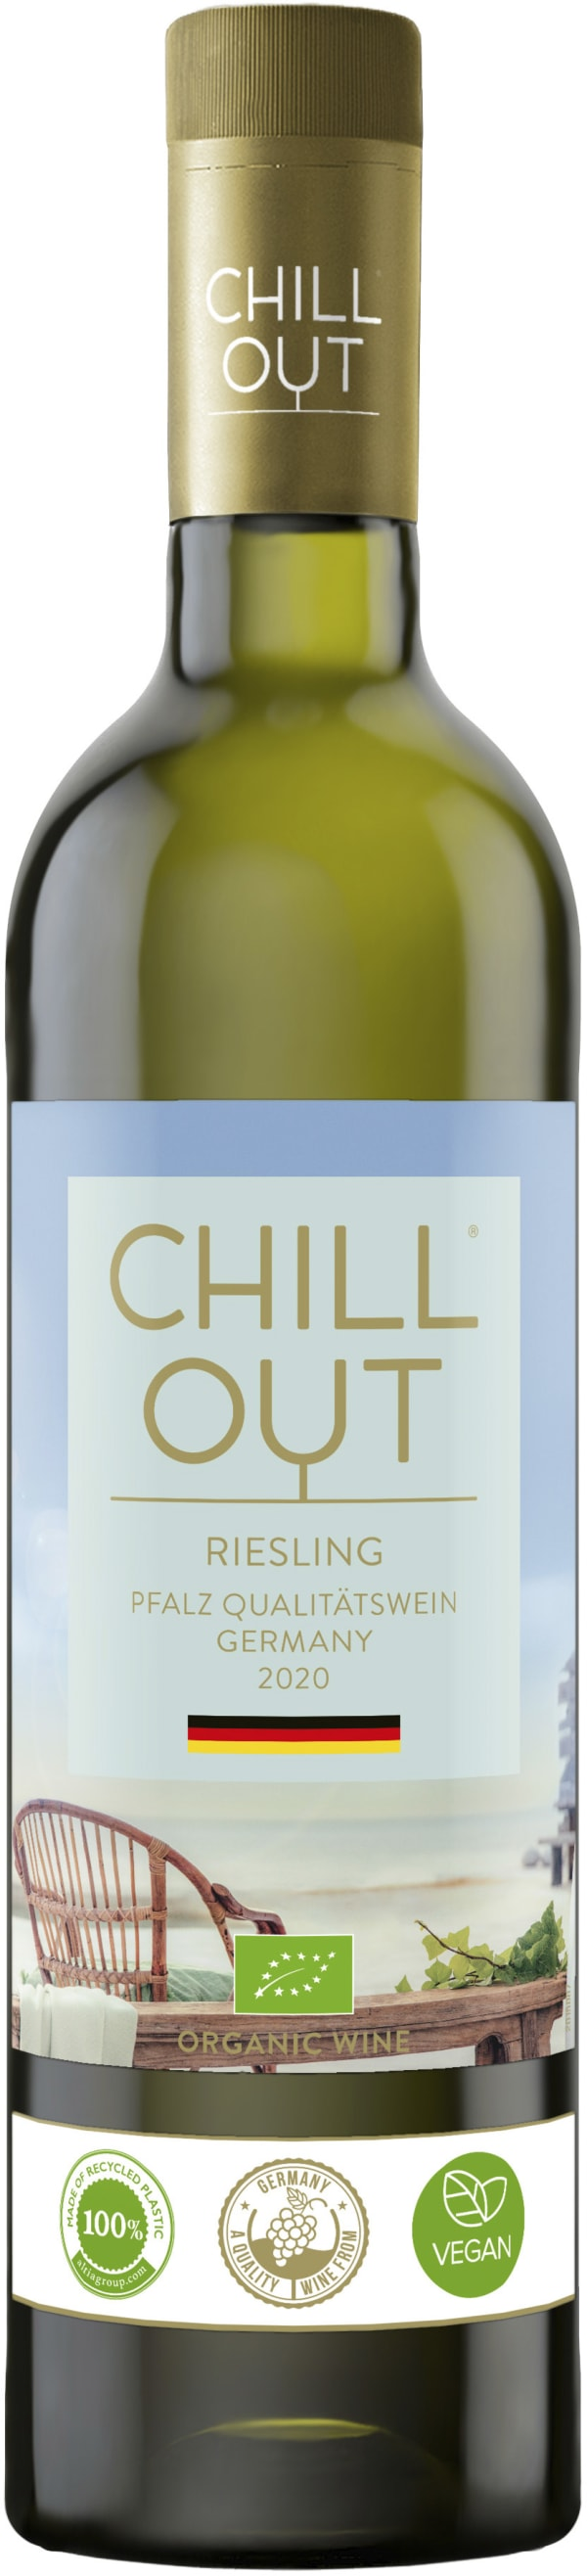 Chill Out Crisp & Fruity Riesling Organic 2016 plastflaska